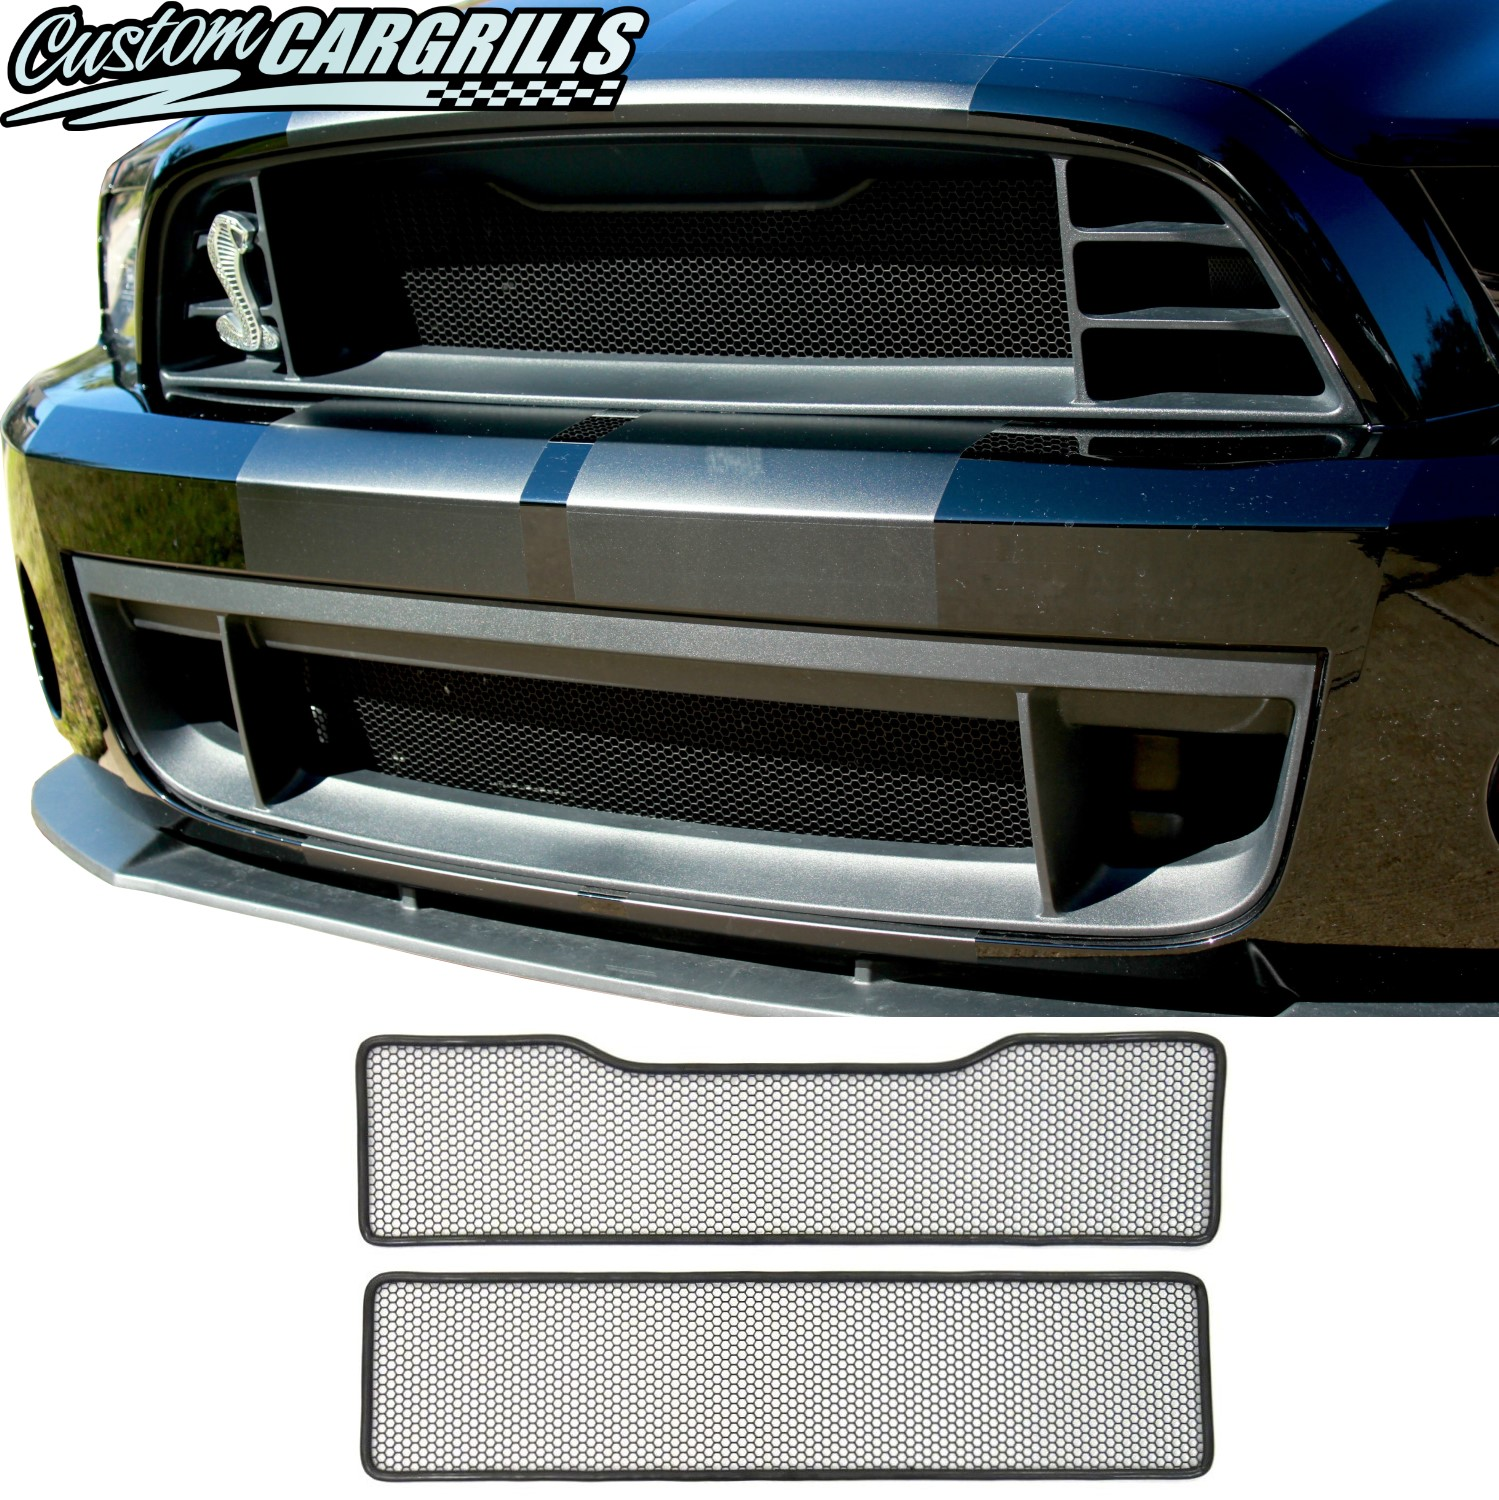 Mesh Grill Kit for 2013 - 2014 Ford Mustang GT500